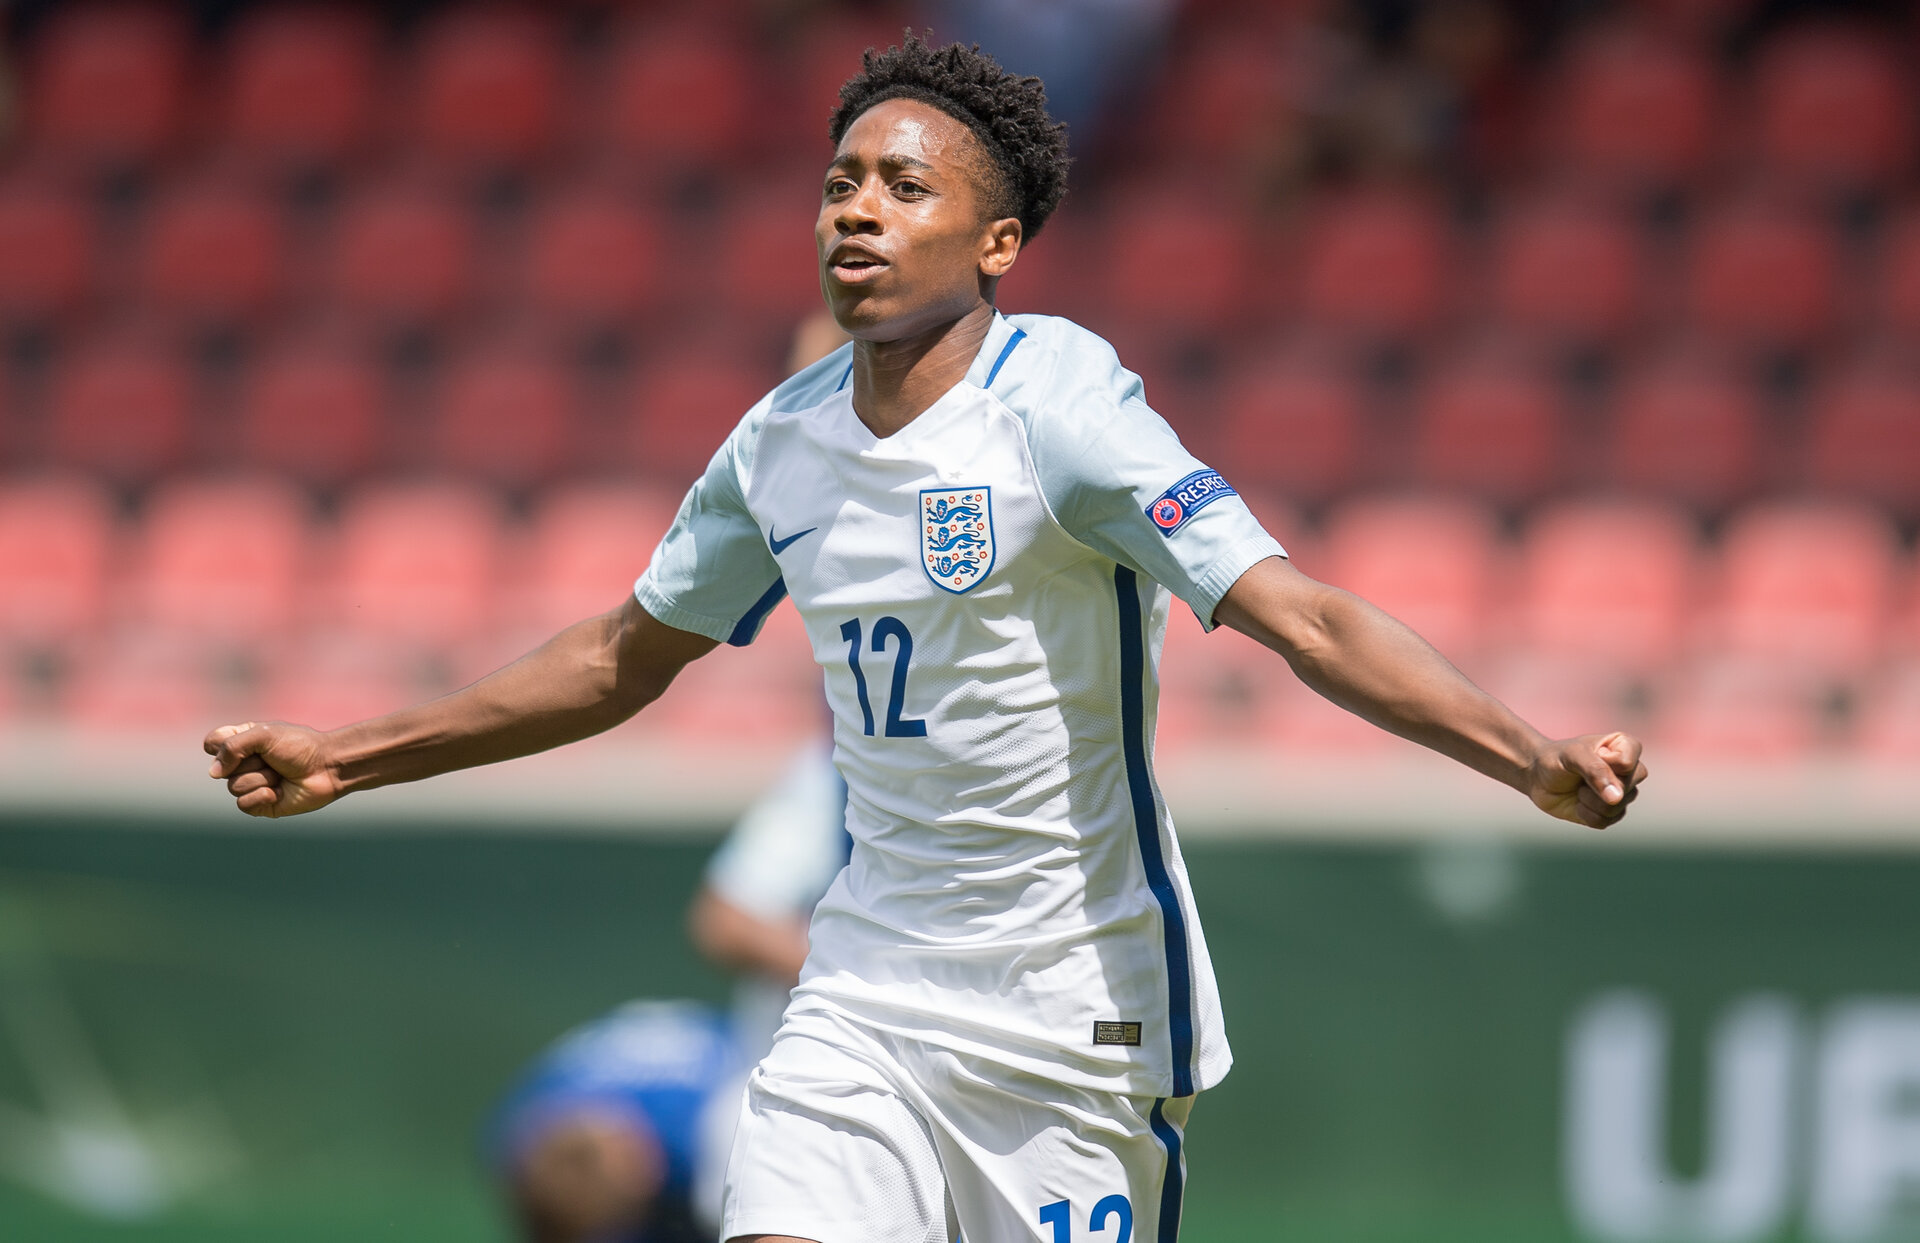 HEIDENHEIM, GERMANY - JULY 18: Kyle Walker-Peters of England celebrates his team's second goal during the UEFA Under19 European Championship match between U19 England and U19 Croatia at Voith-Arena on July 18, 2016 in Heidenheim, Germany. (Photo by Daniel Kopatsch/Bongarts/Getty Images)